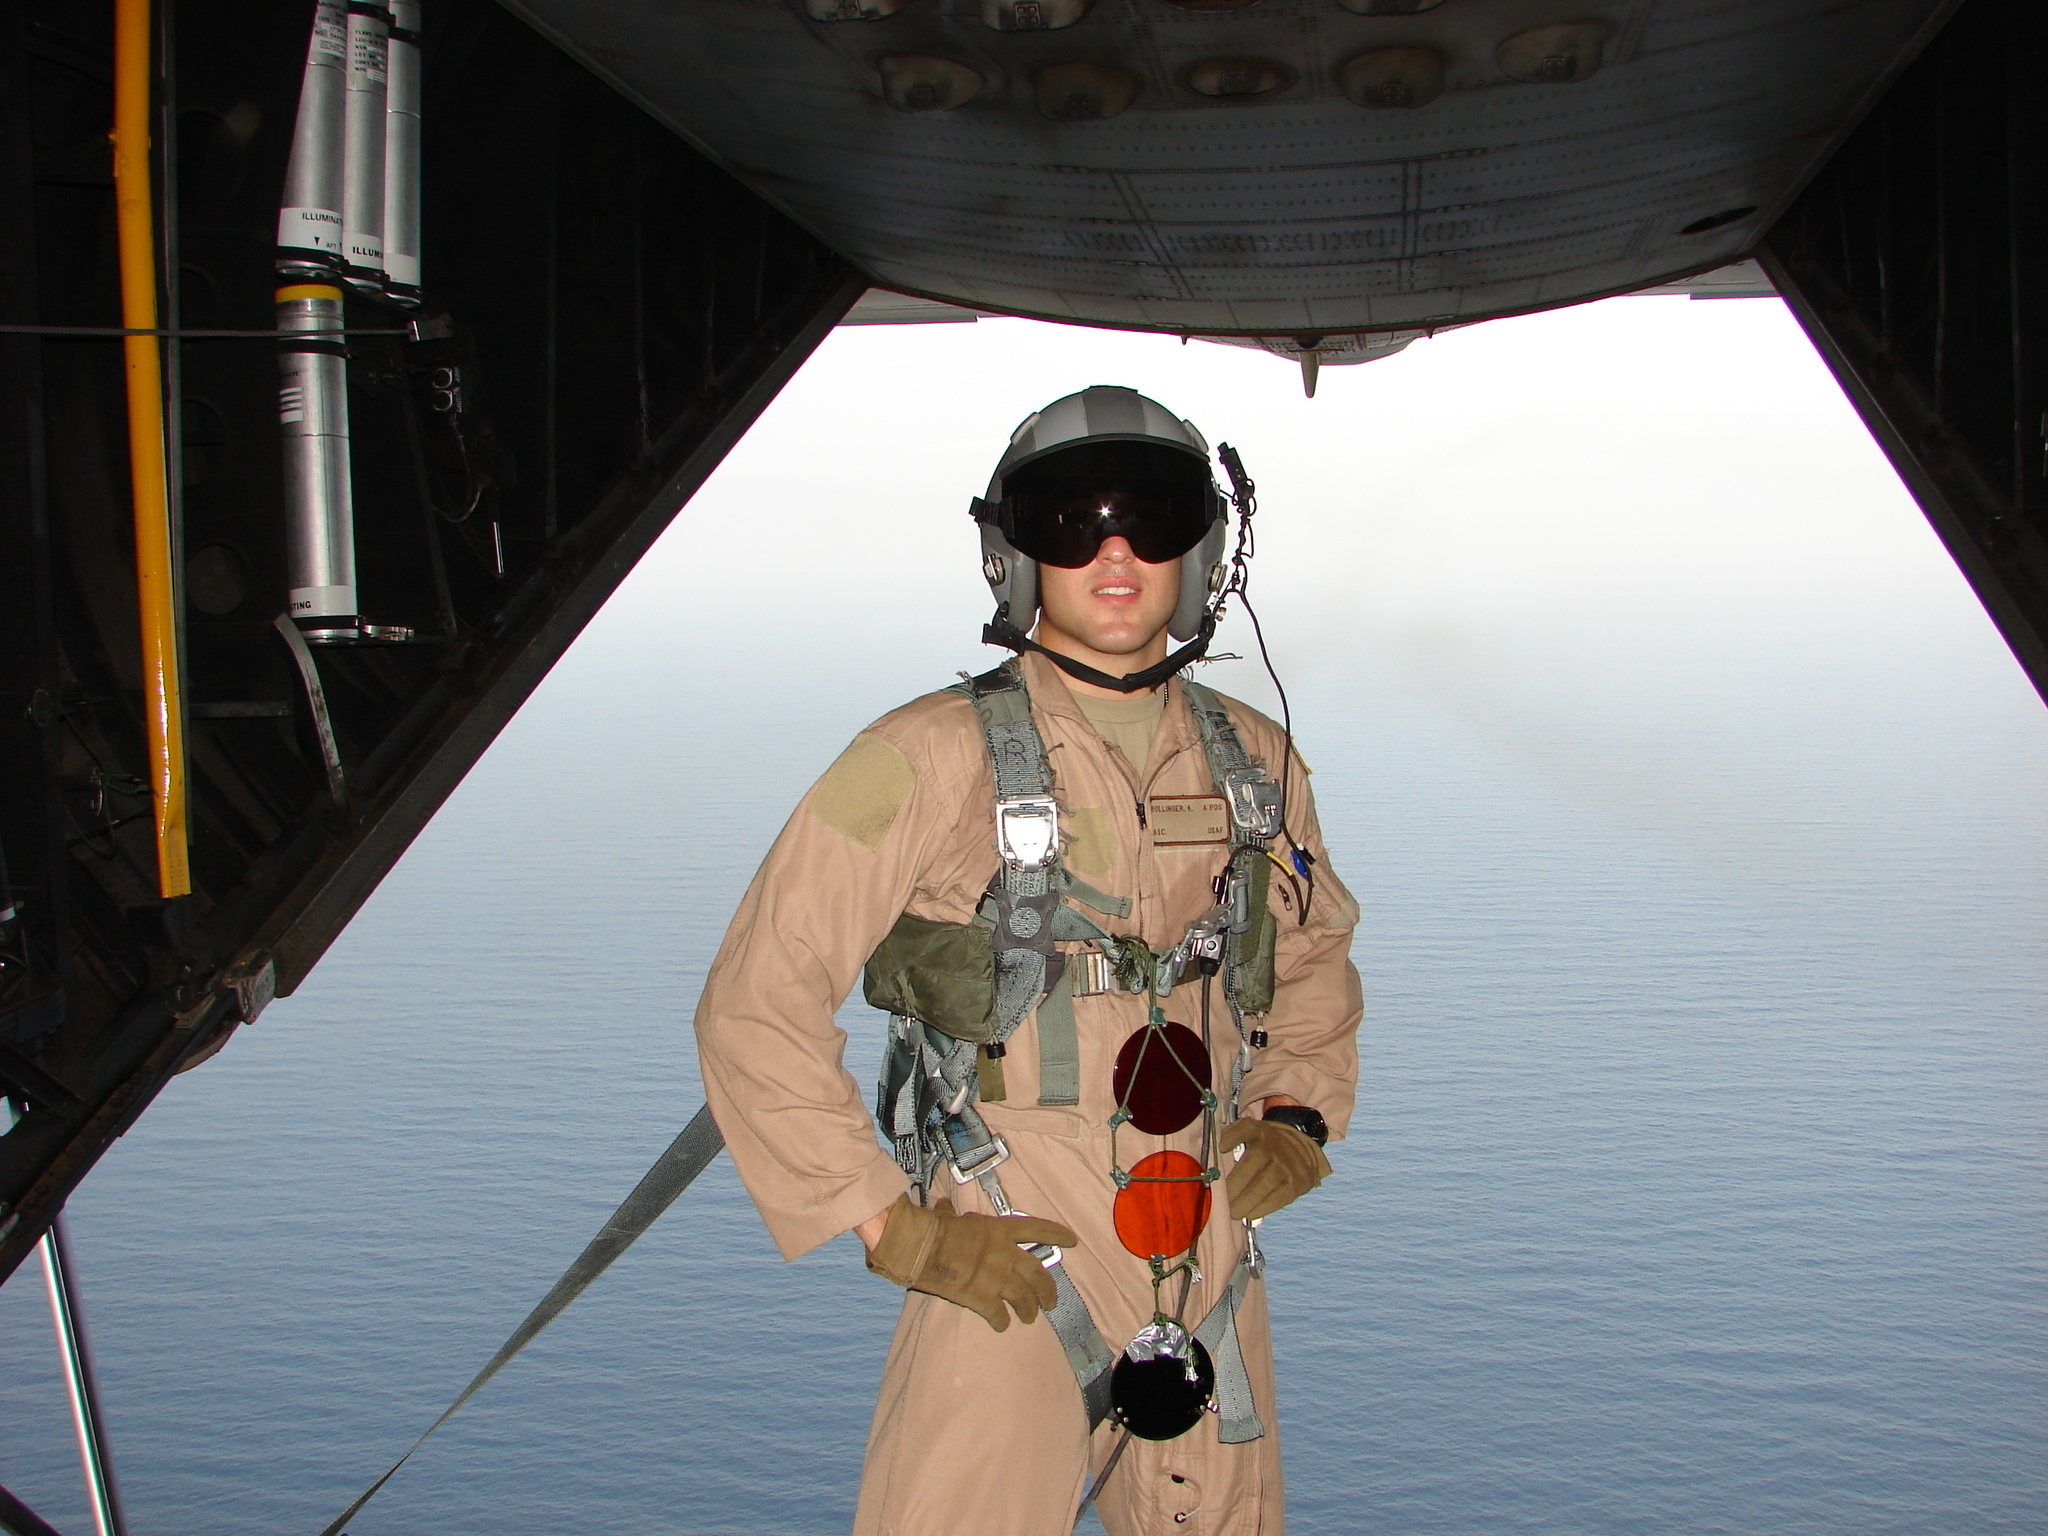 U.S. Air Force Airman 1st Class Kade Bollinger poses on the ramp of a U.S. Air Force HC-130P King during his first deployment to the Horn of Africa in 2007. He had just completed helicopter air refueling with a U.S. Marine Corps MH-53 Super Stallion. (Courtesy photo)